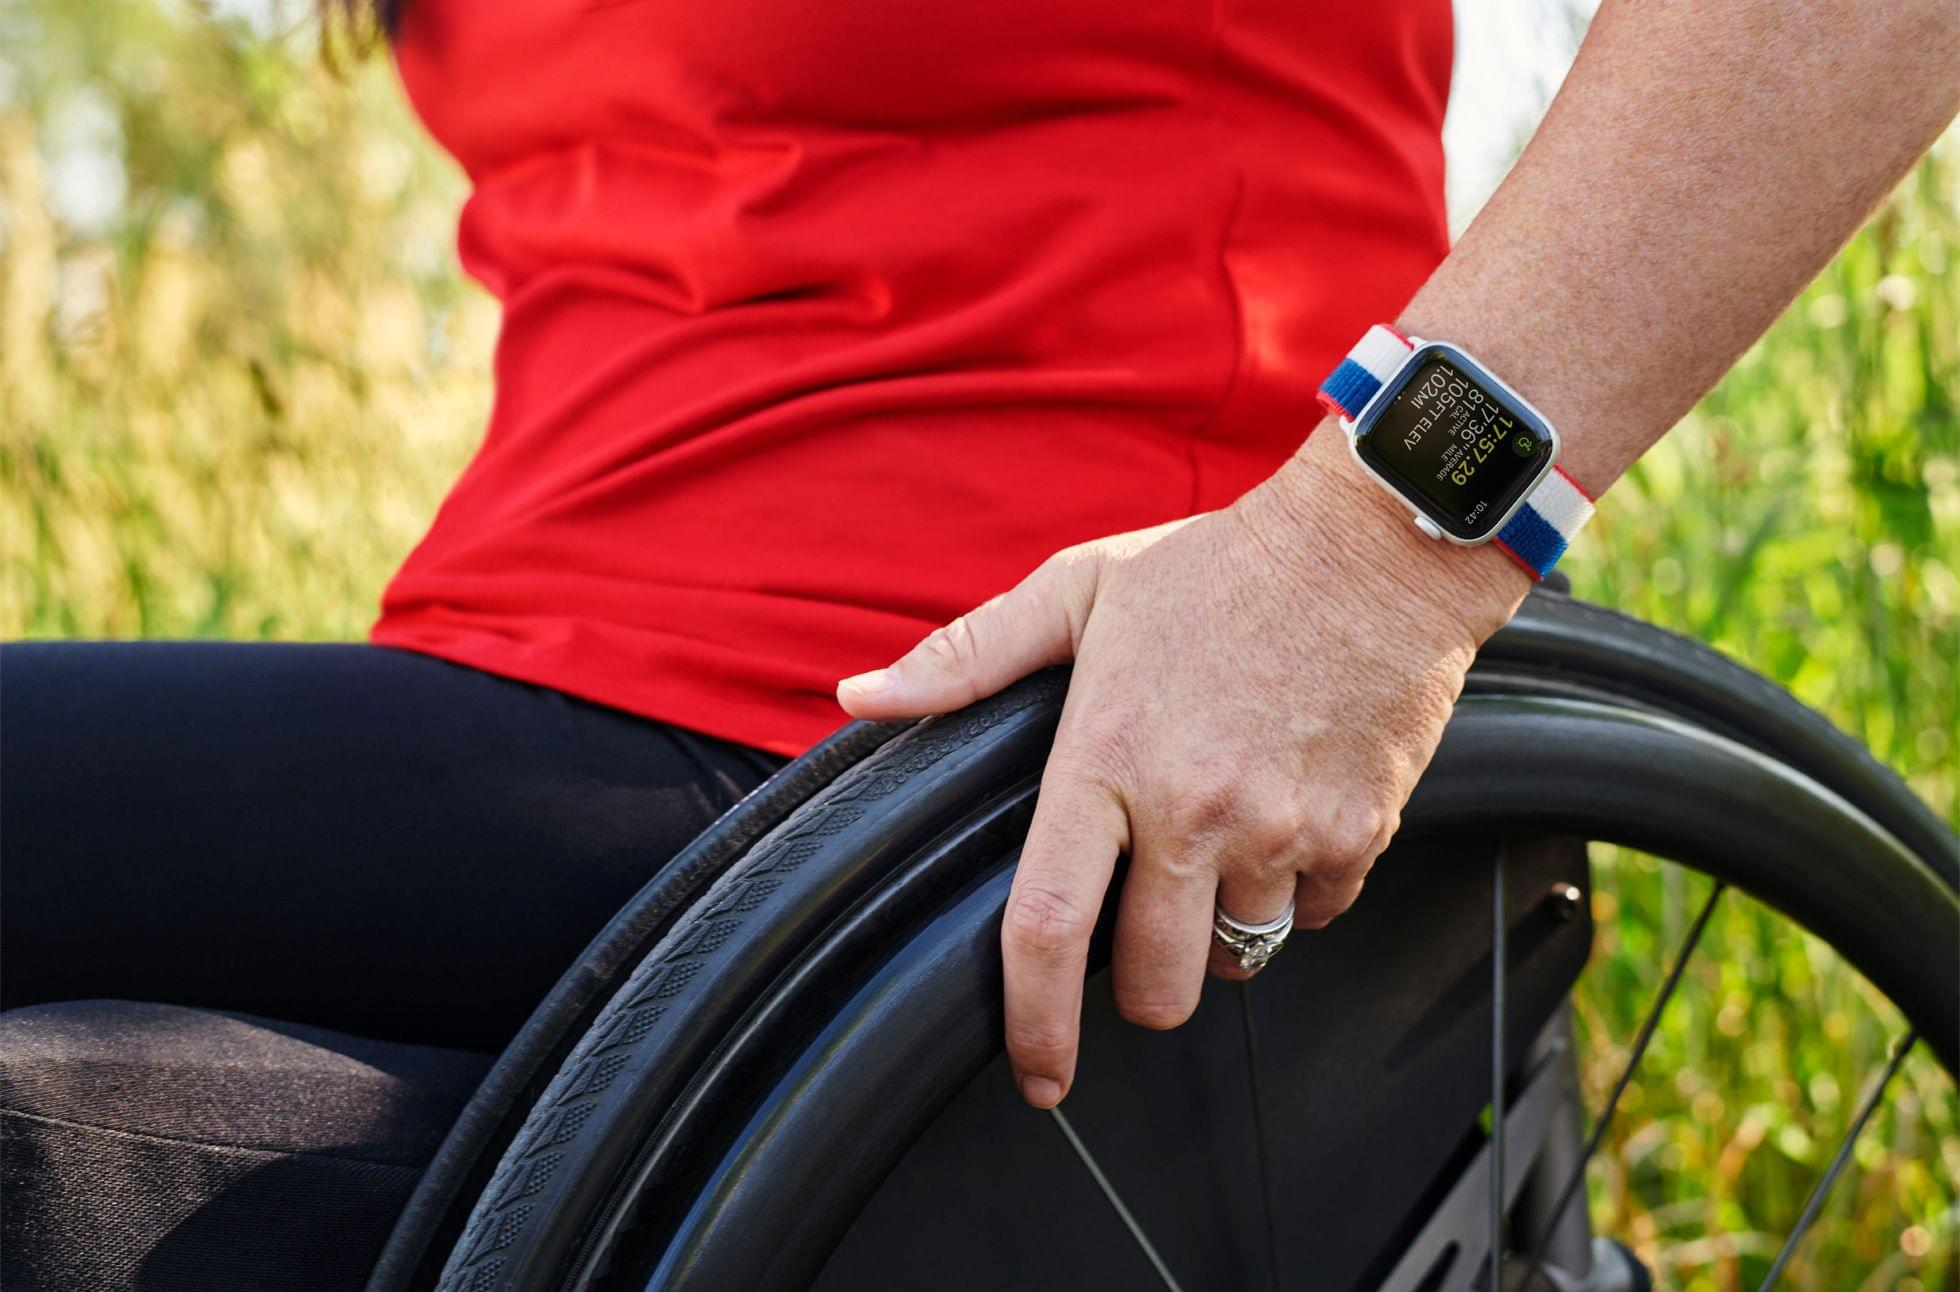 The US Sports Loop band from Apple's International Collection modeled by Olympic gold medalist Amy Van Dyken.